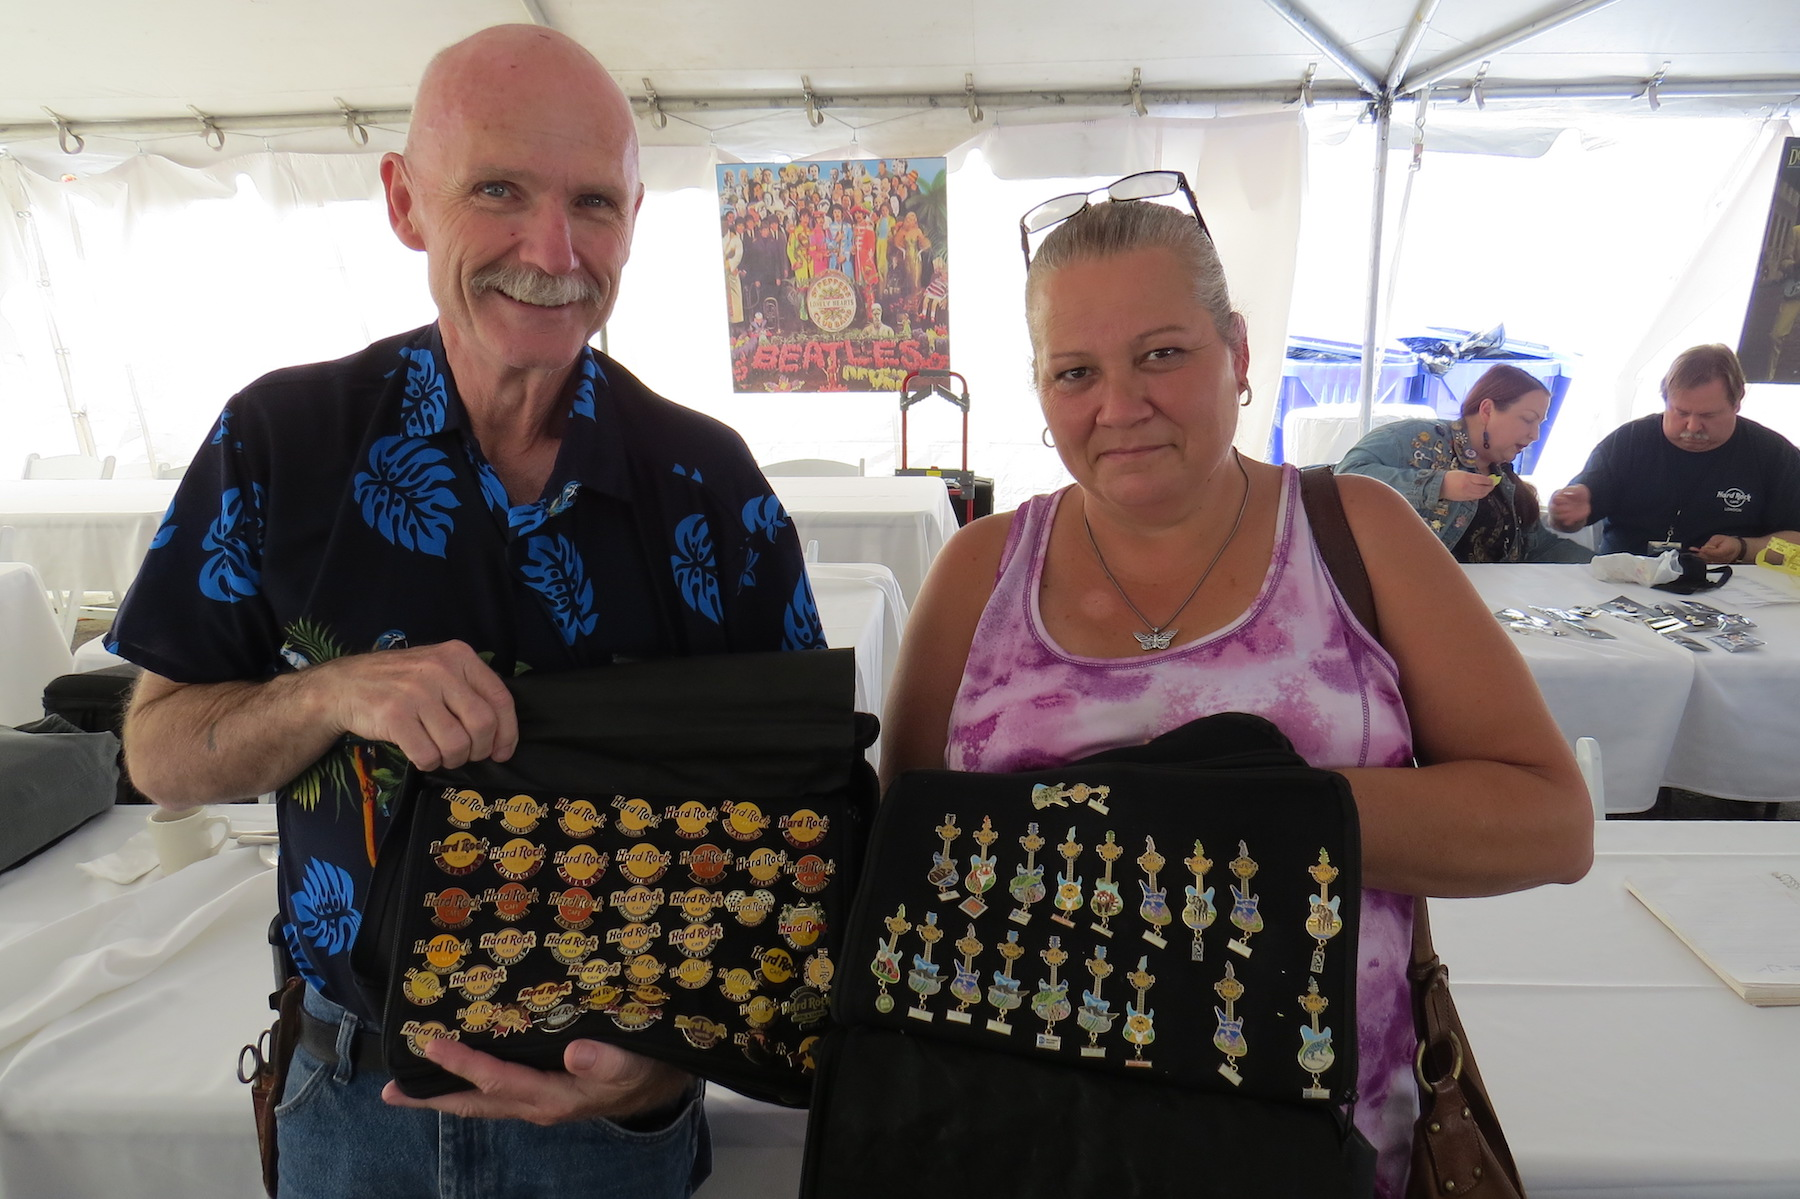 John and Lisa McKee of Georgetown, Ontario, brought six binders full of Hard Rock Cafe pins to trade with other collectors. While that might seem like a lot of merchandise, John said they have 20,000 (!) pins in their permanent collection.